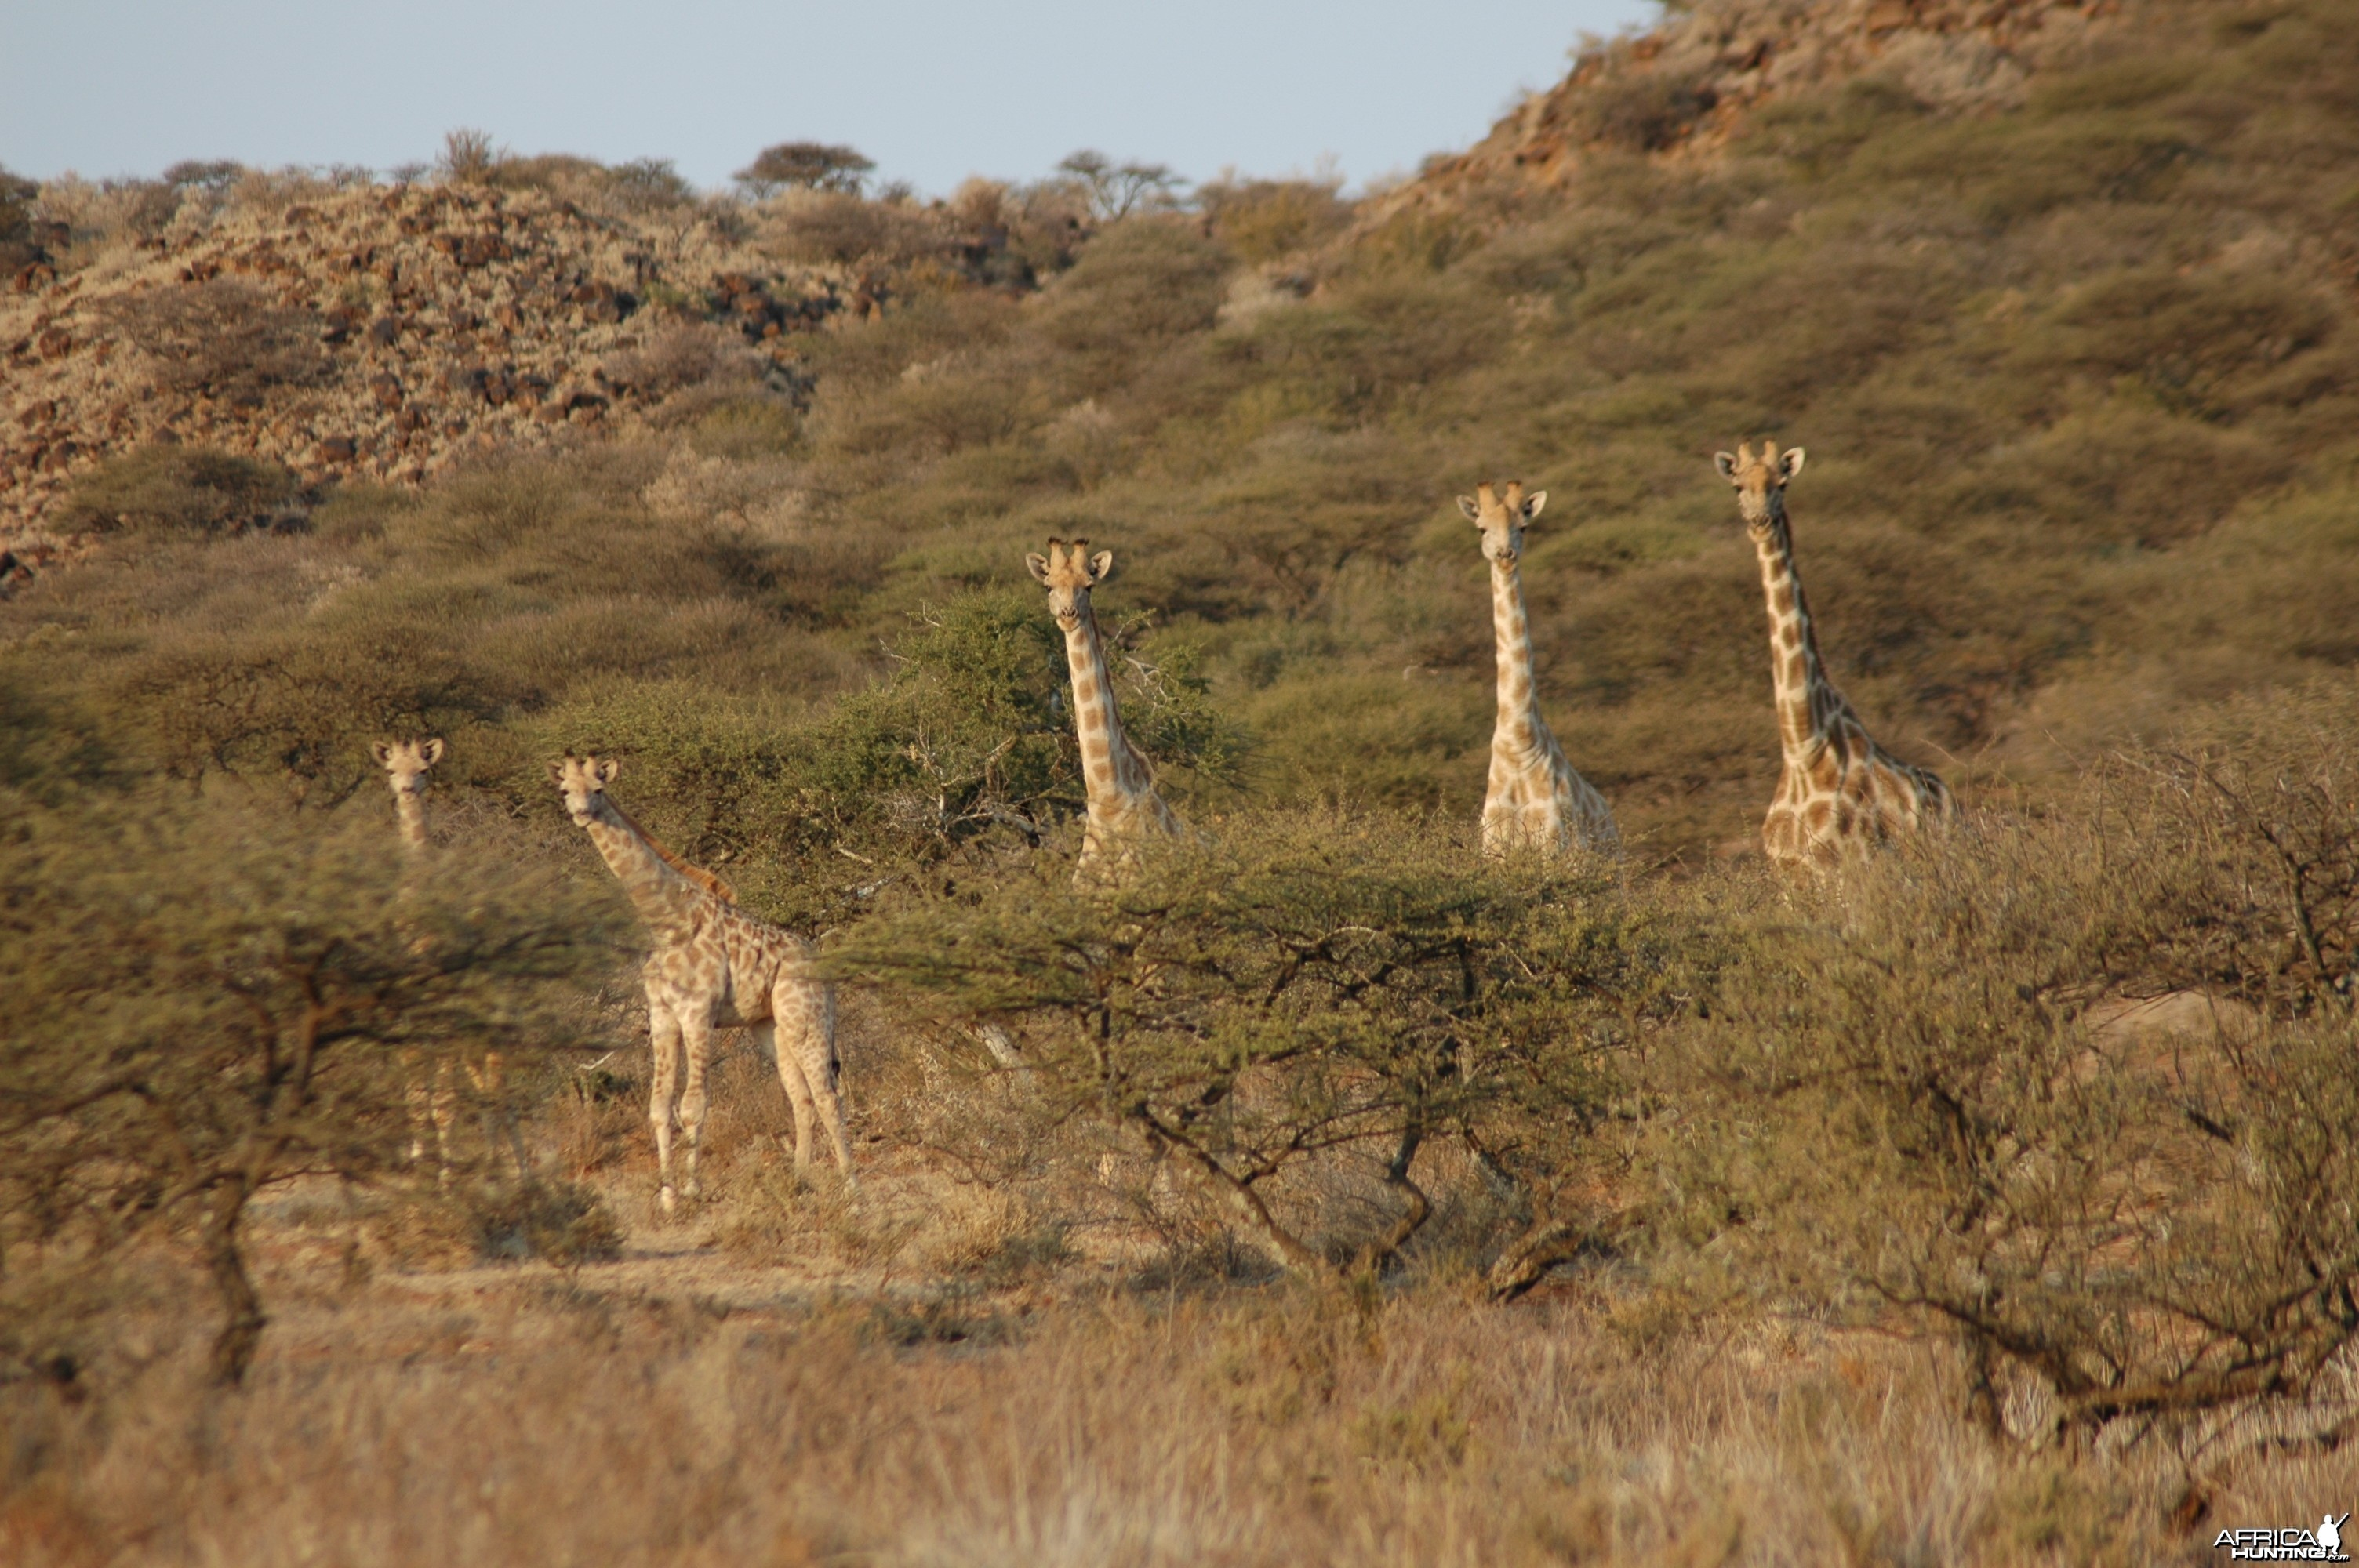 Giraffes at Wintershoek